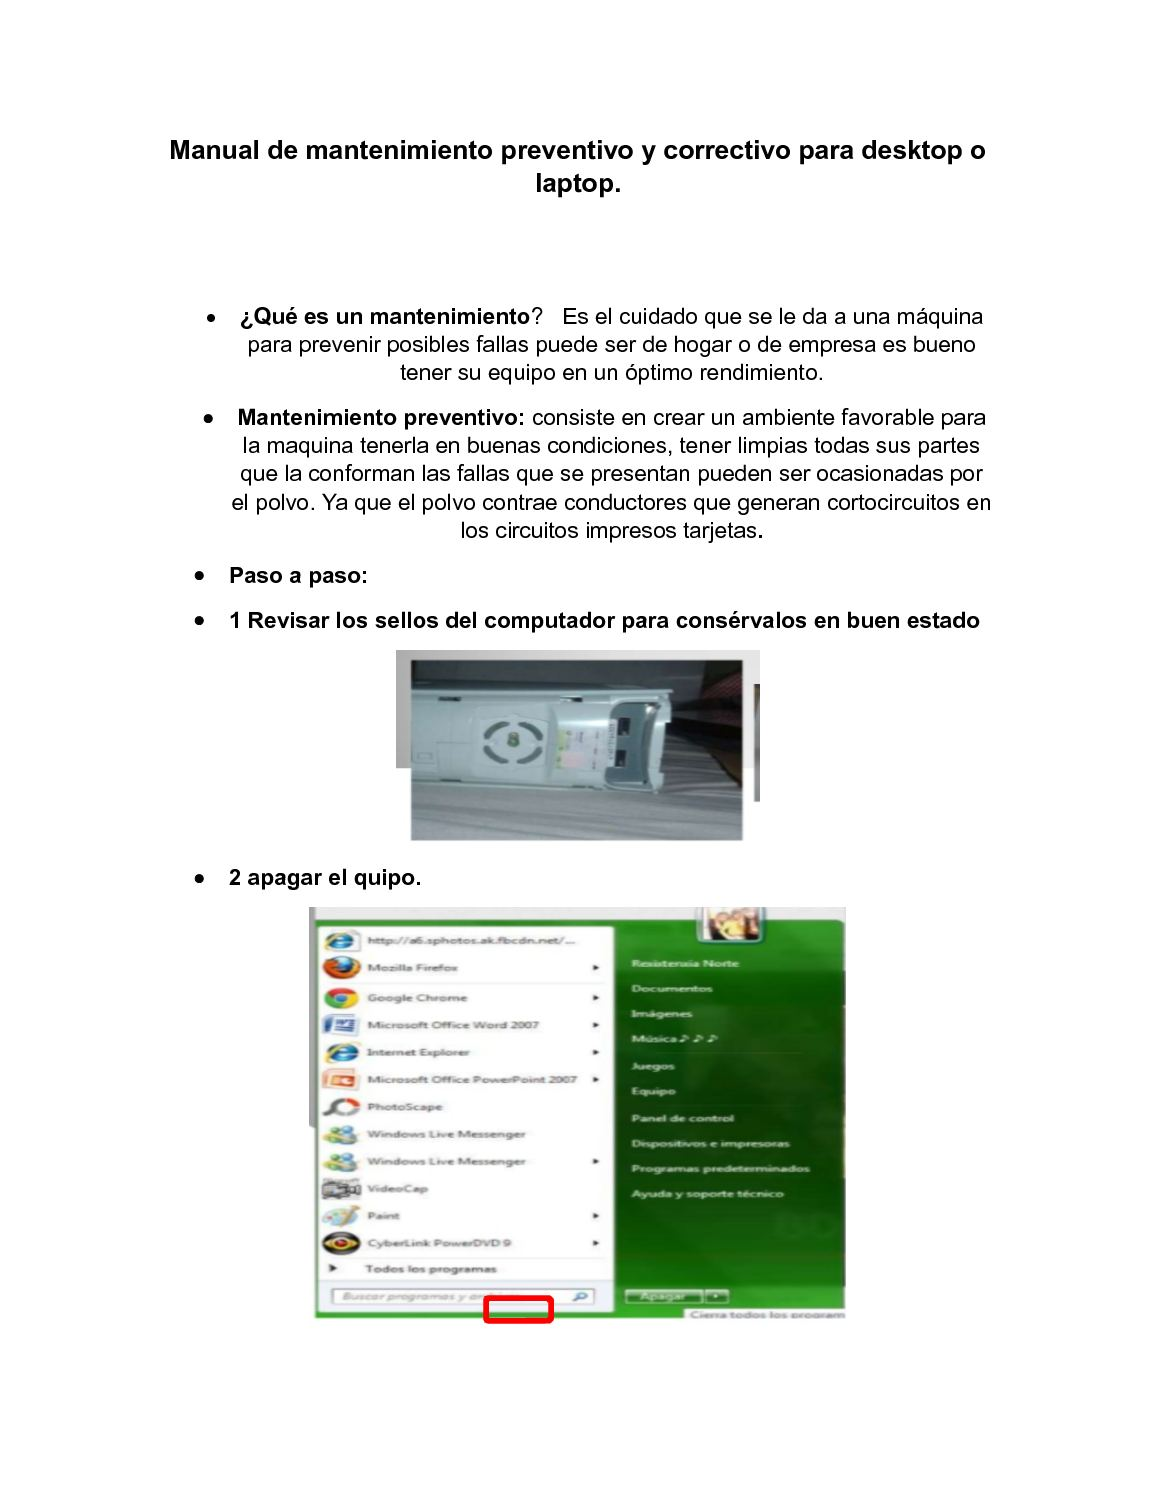 Manual De Mantenimiento Preventivo Y Correctivo Para Desktop O Laptop